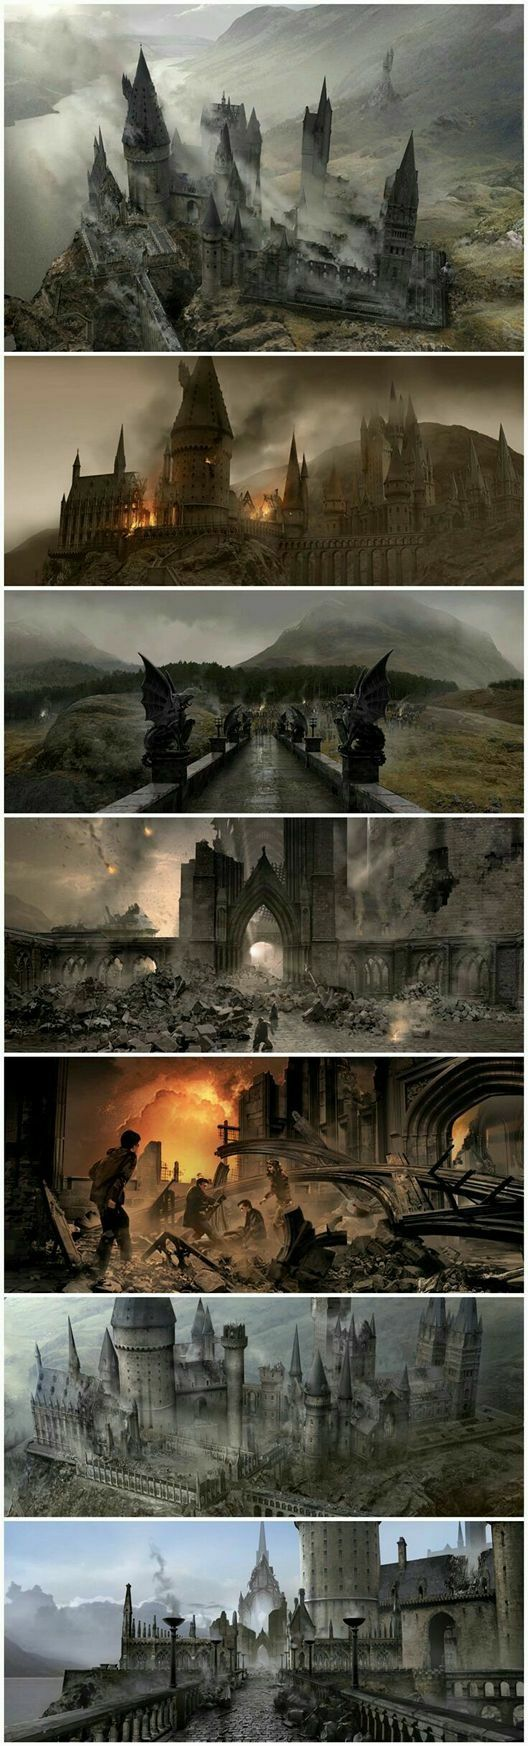 Hogwarts, May 2nd, After the Battle of Hogwarts